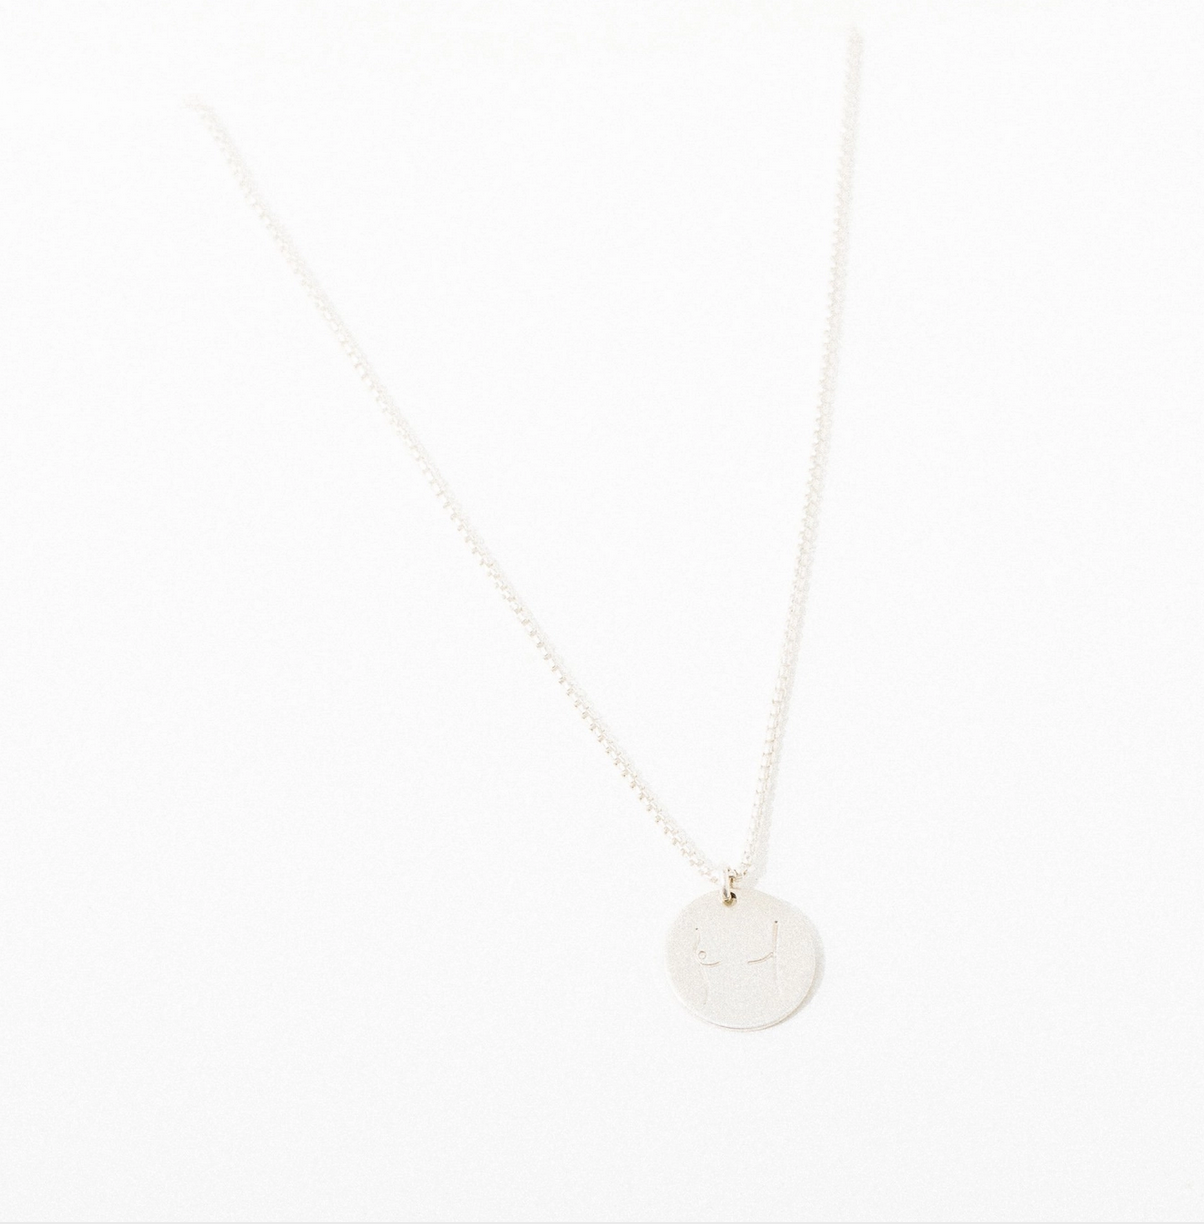 Larissa Loden Mastectomy Pendant Necklace-Sterling Silver